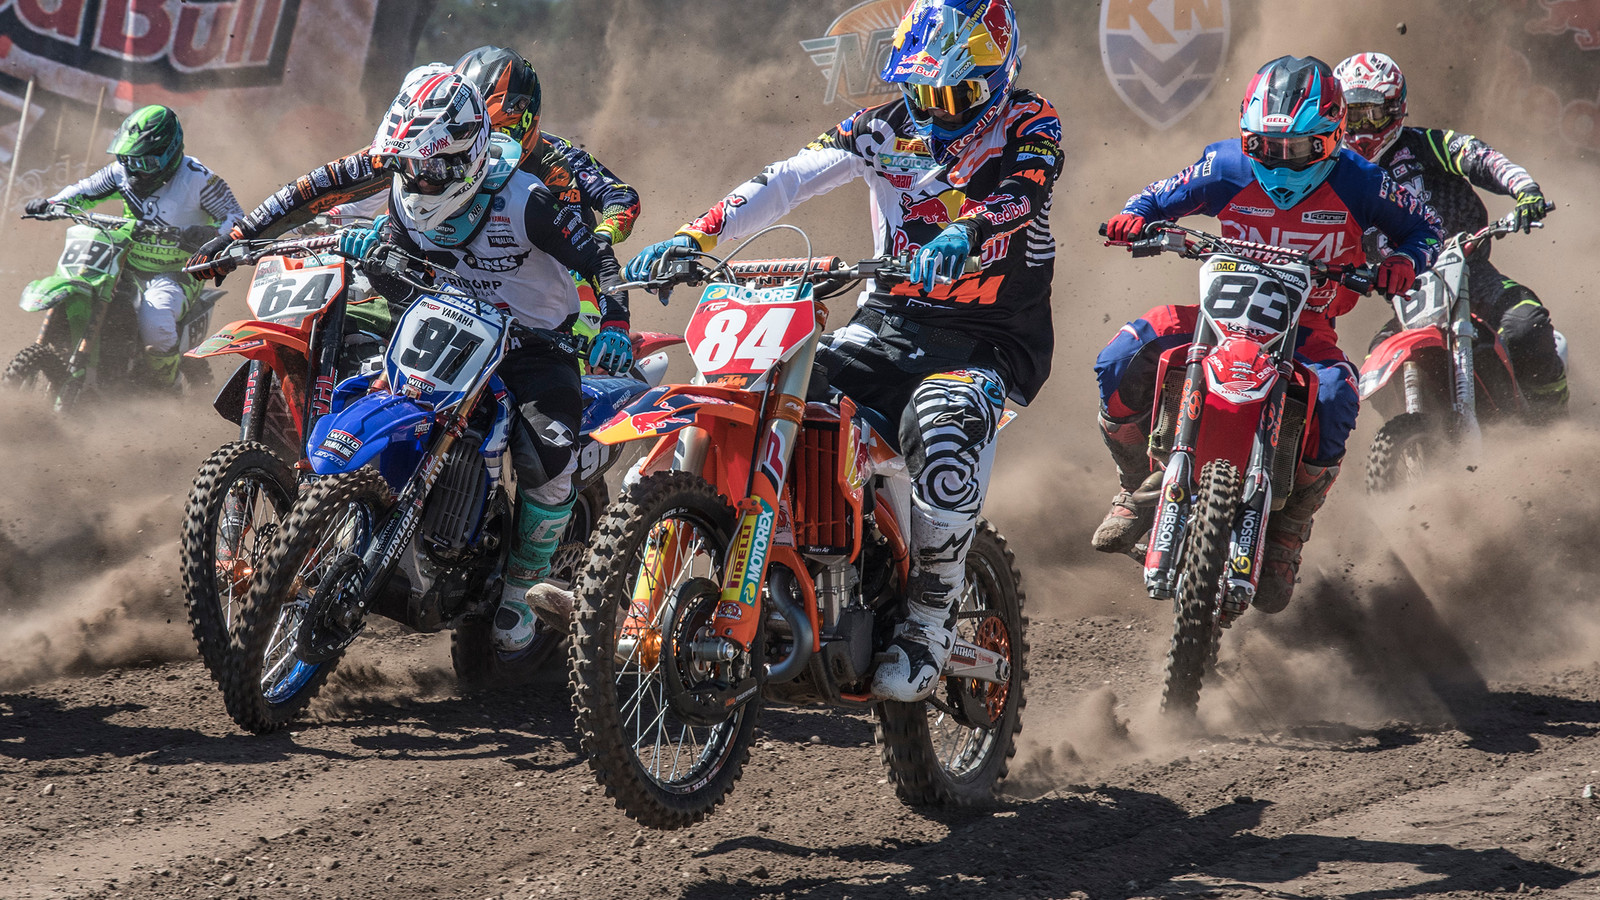 Dutch Masters of Motocross in Mill. Herlings met nummer 84.